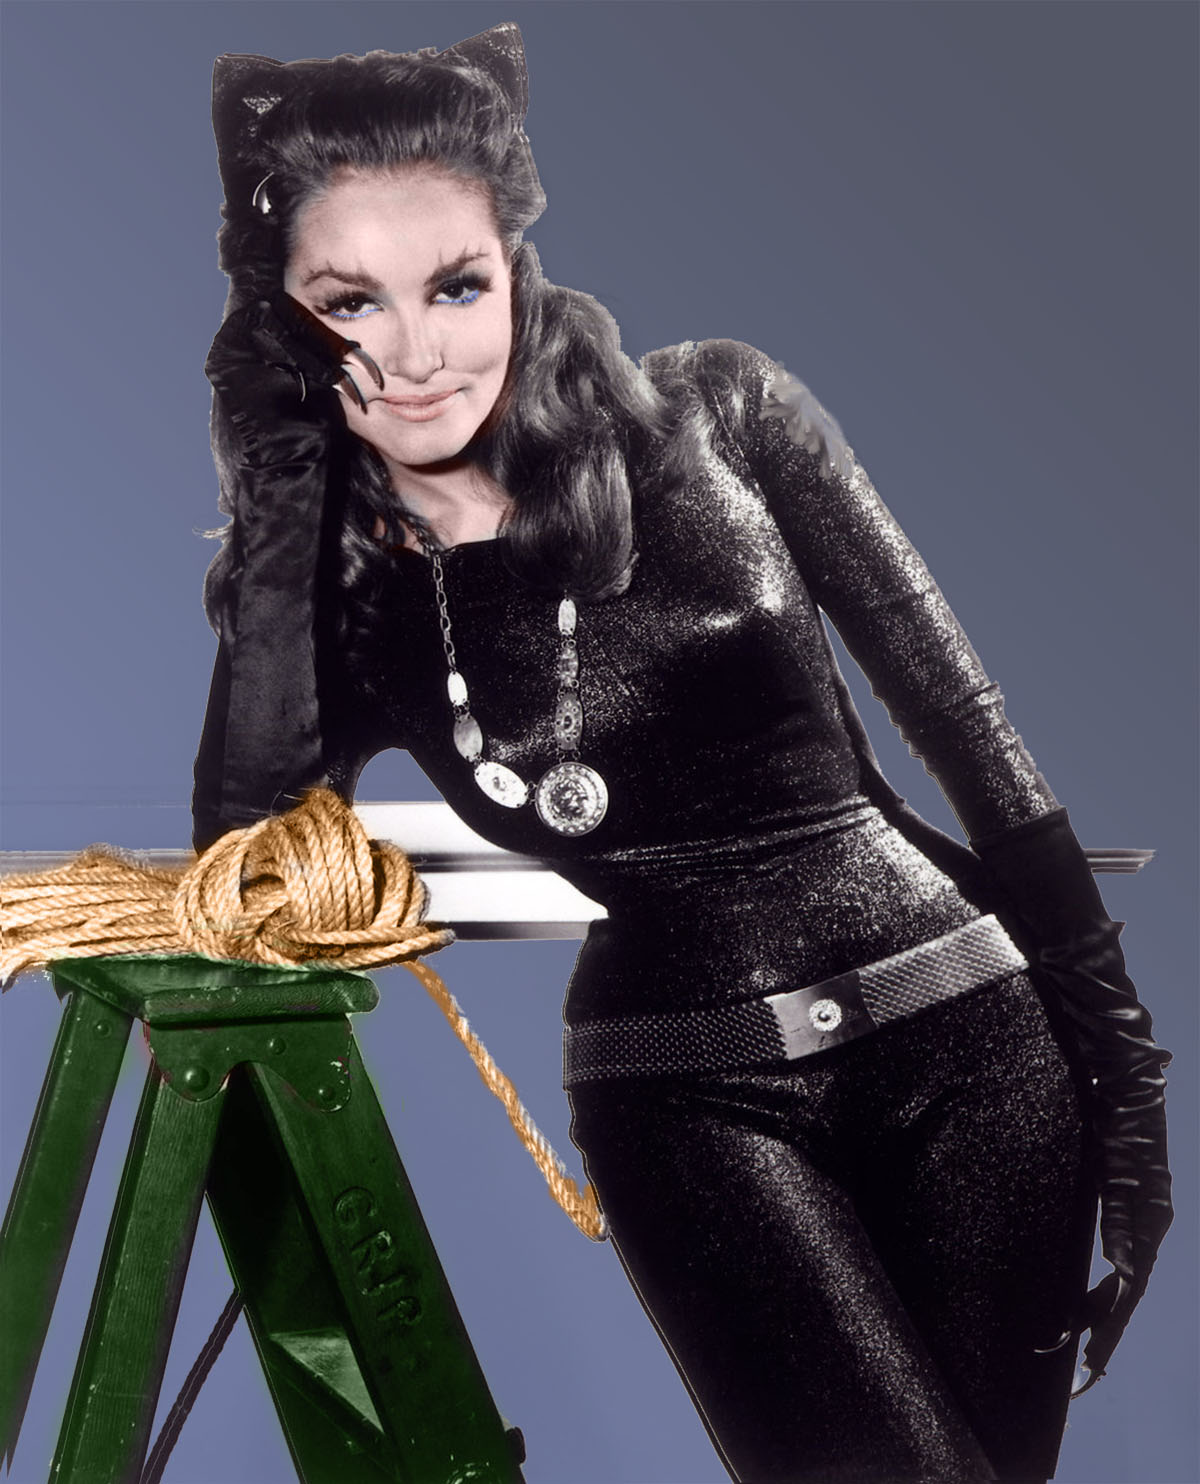 The ...  sc 1 st  Thomas Welsh & Top 5 Catwoman Costumes Better than Anne Hathawayu0027s - Thomas Welsh